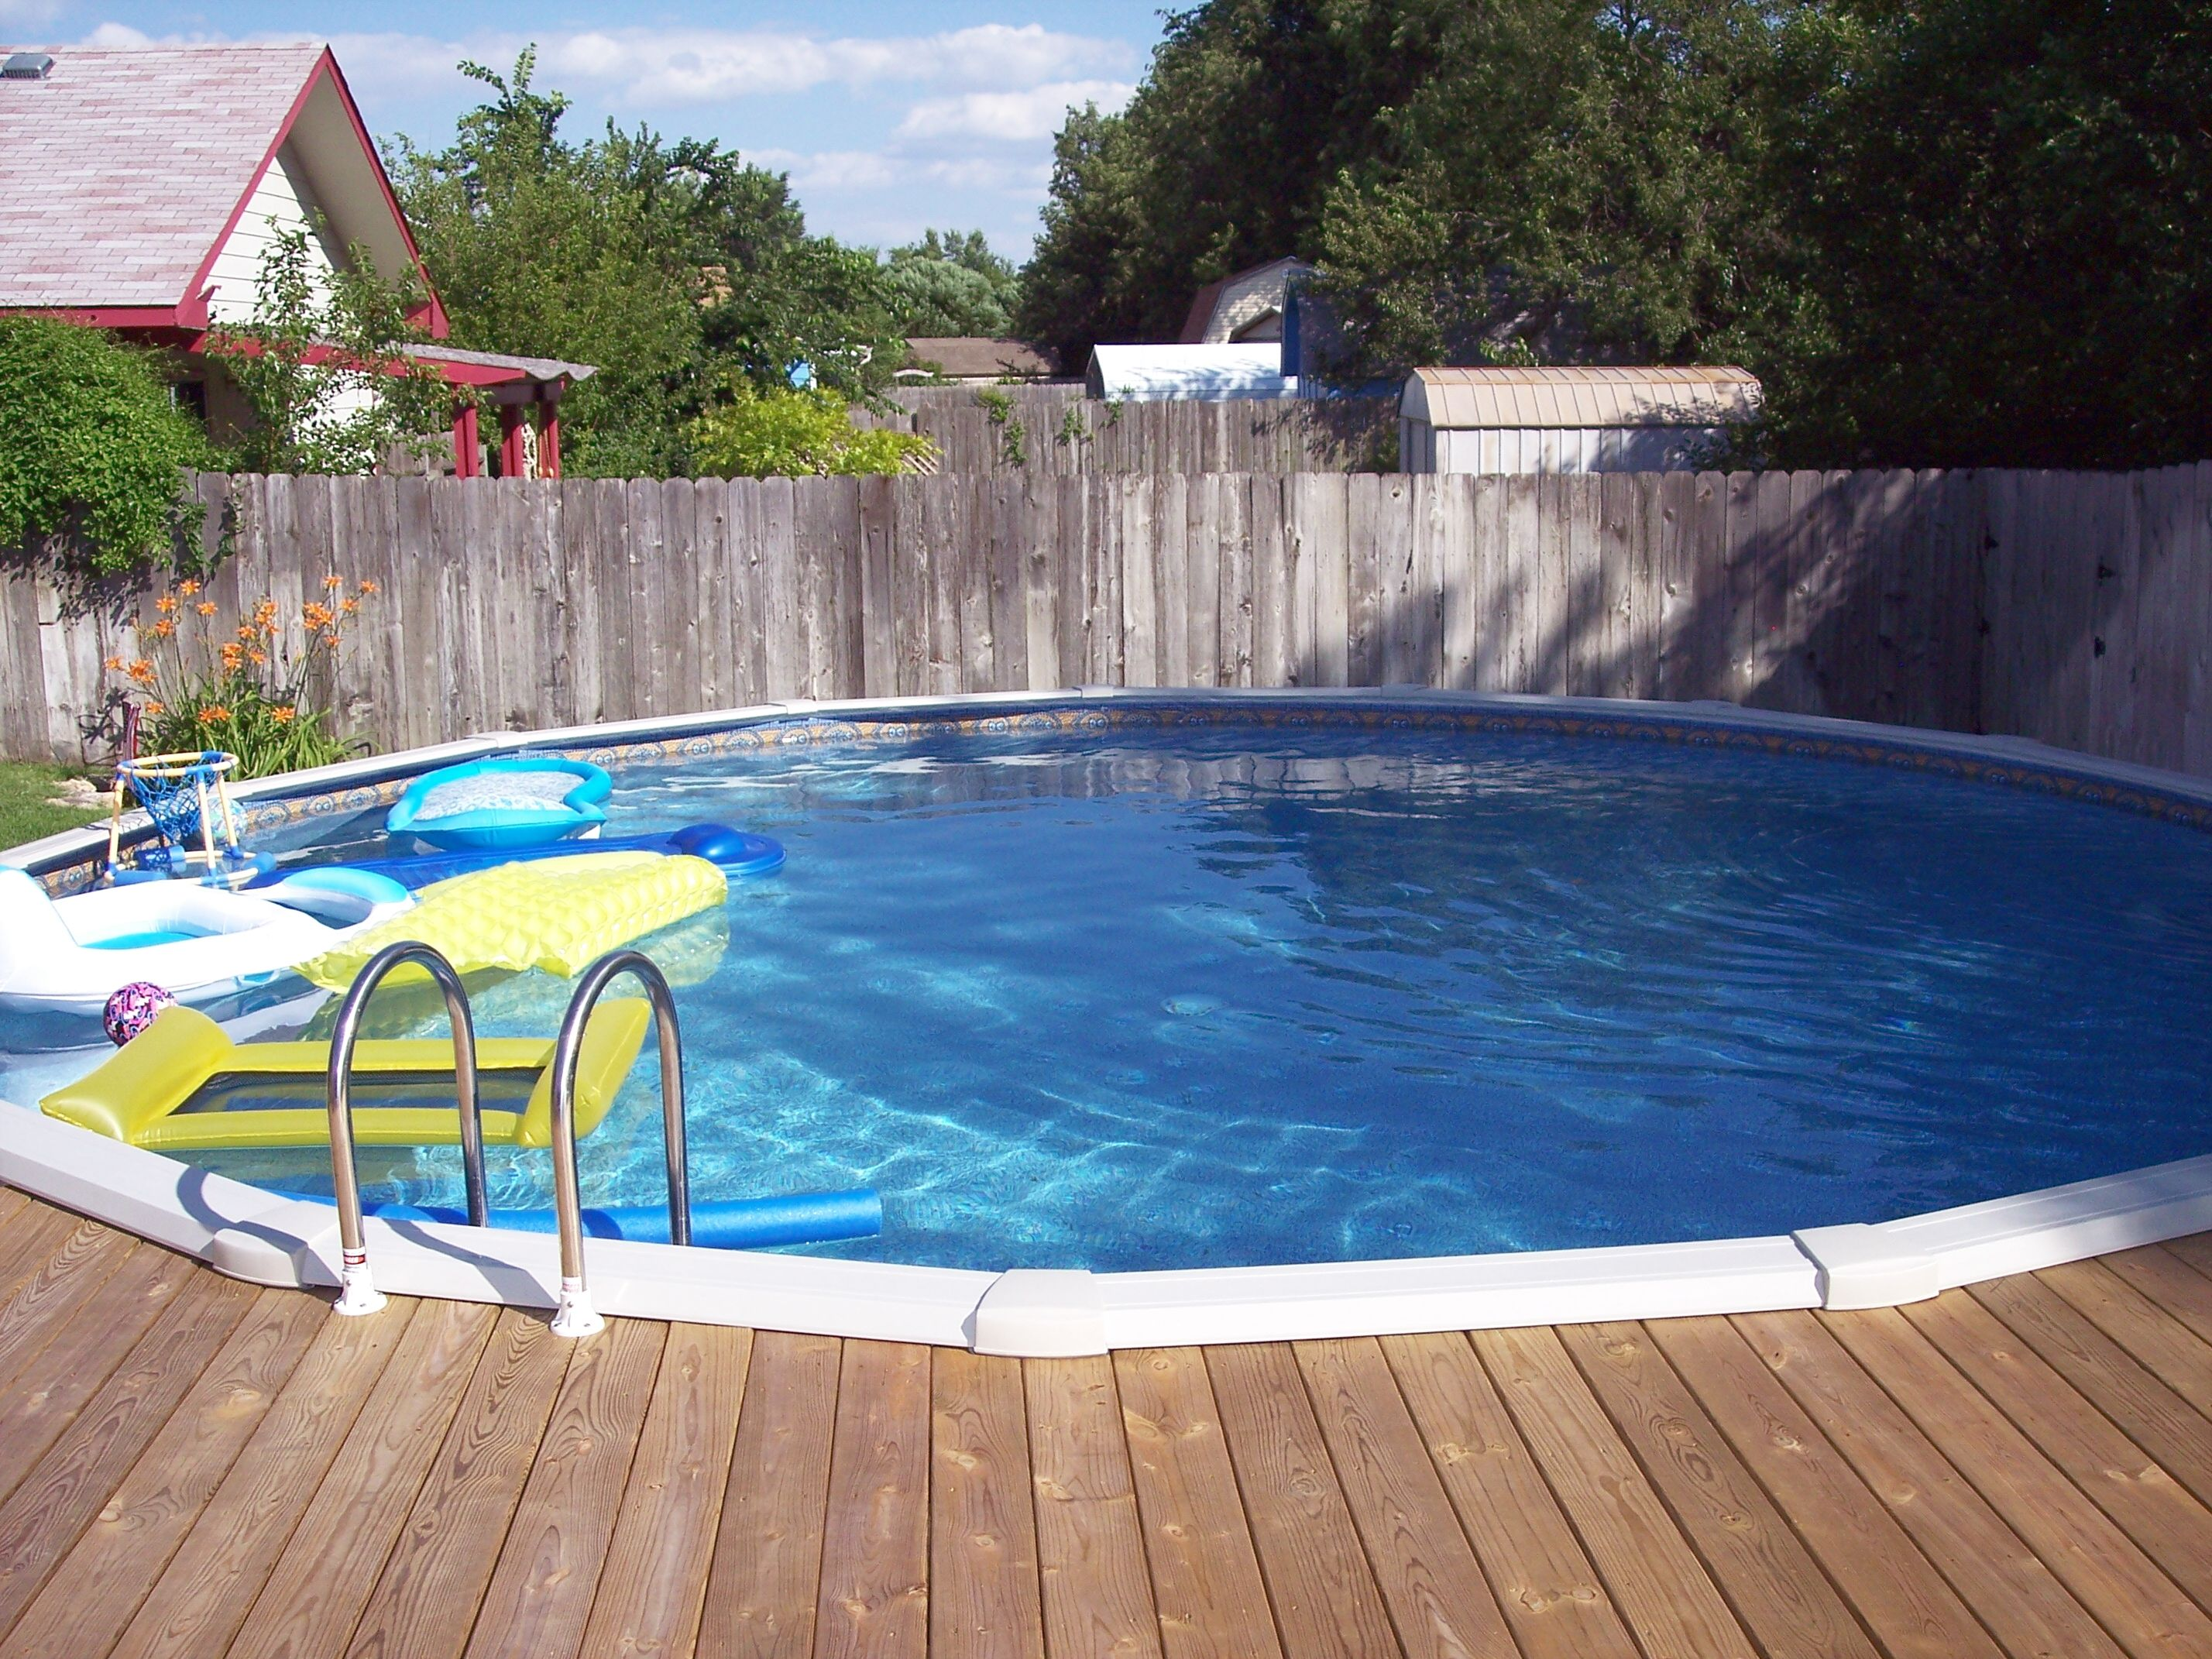 view from the deck of above ground pool lowered 24\